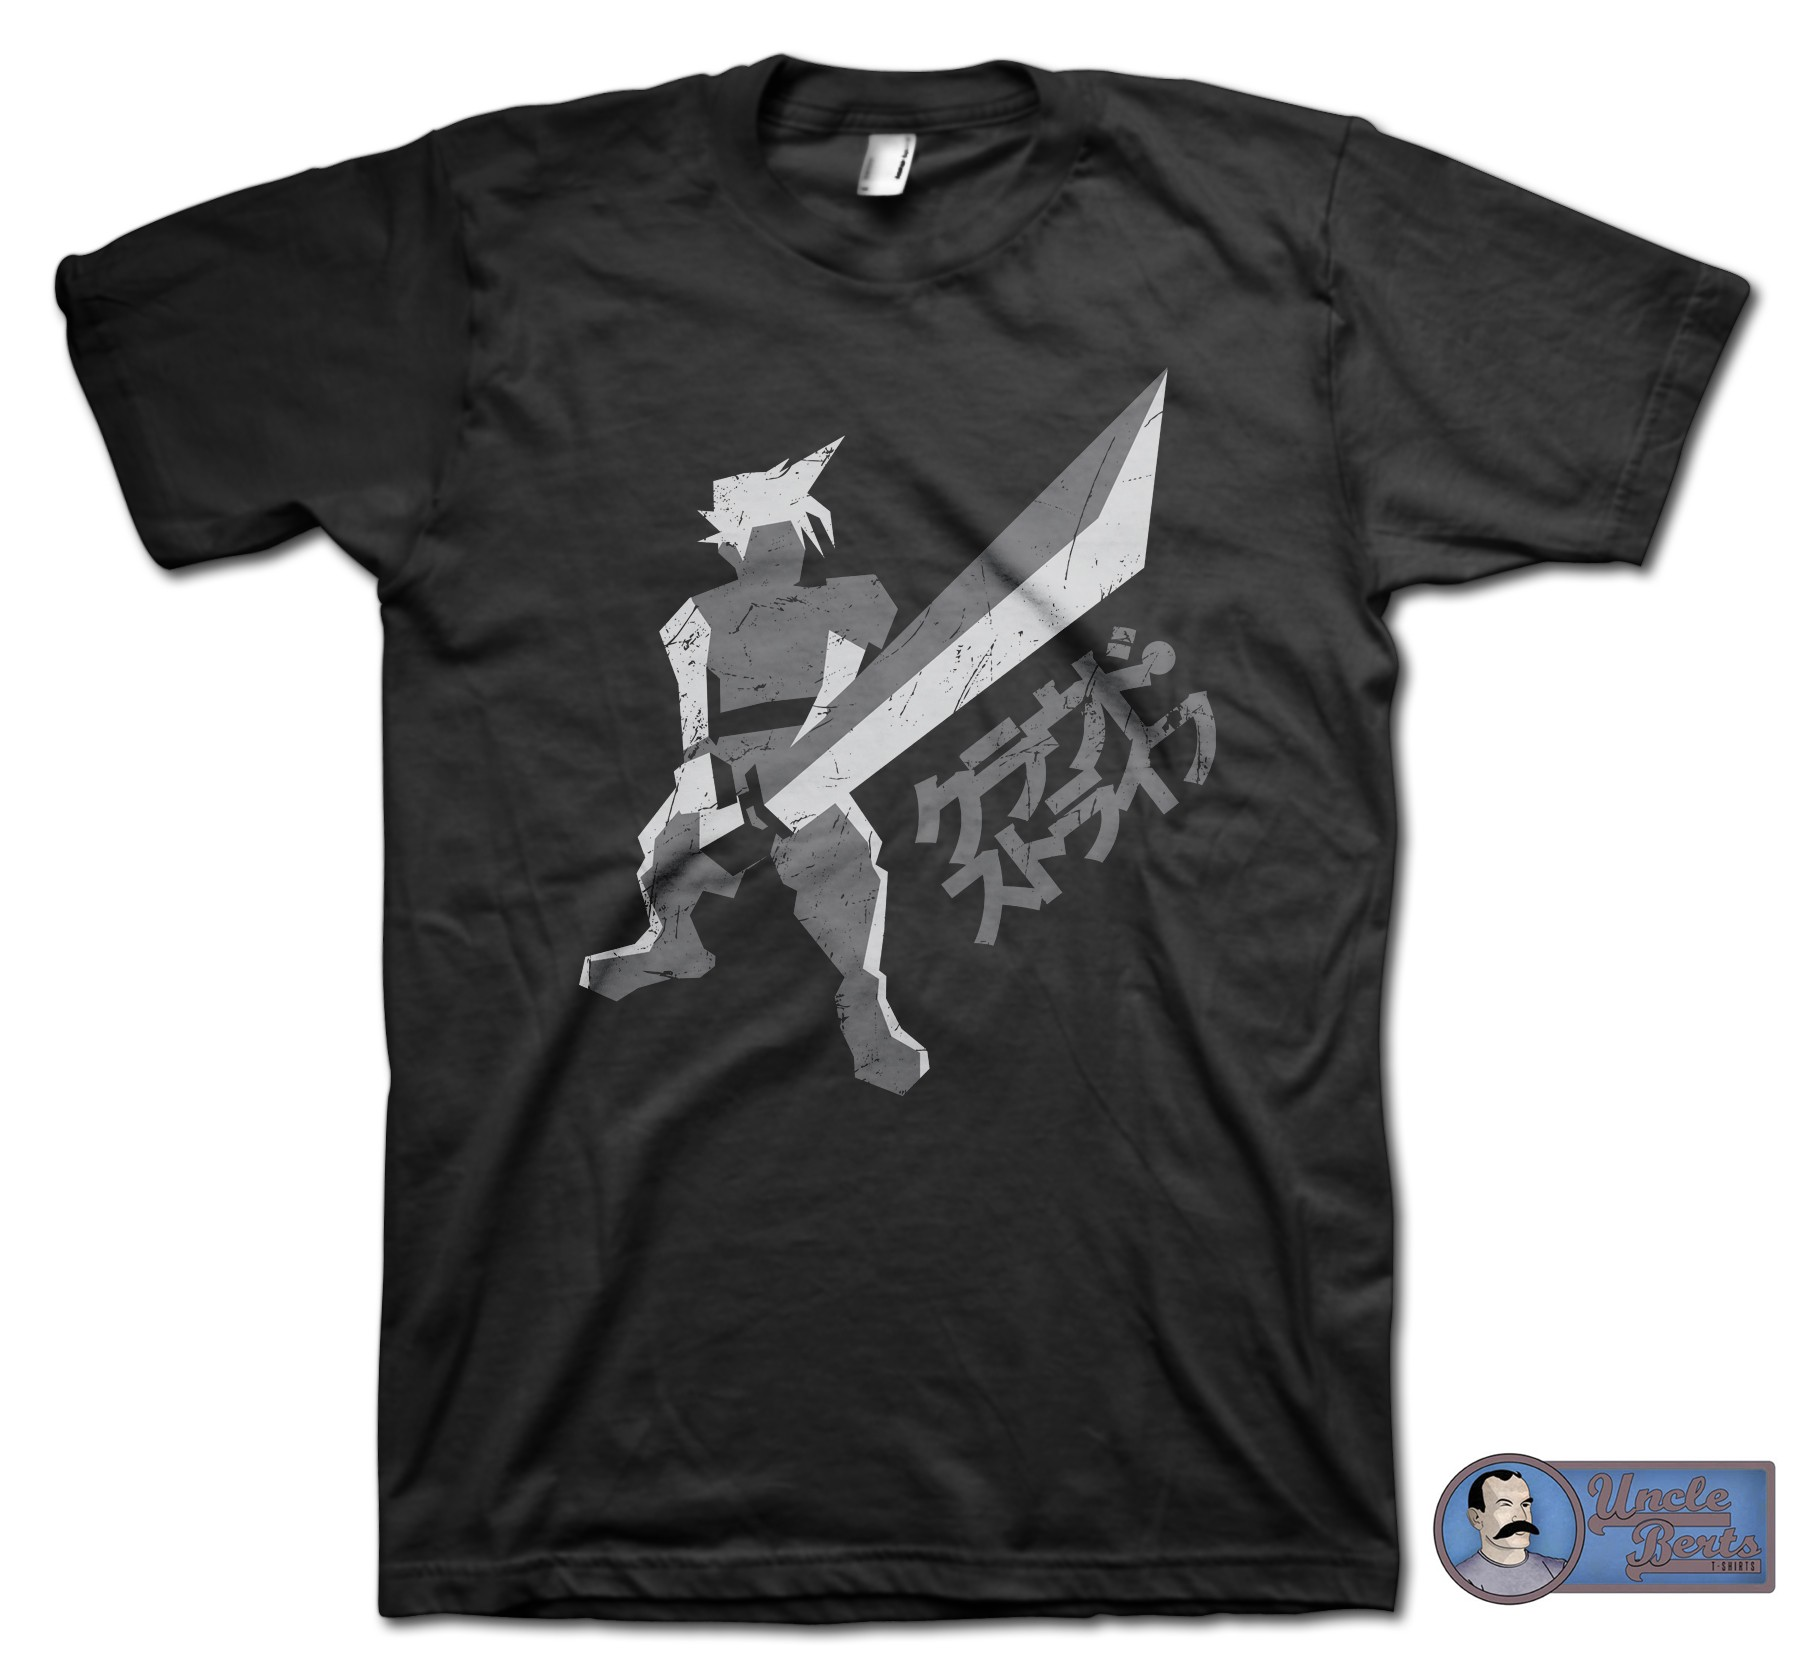 Mercenary for hire T-Shirt - inspired by Final Fantasy VII